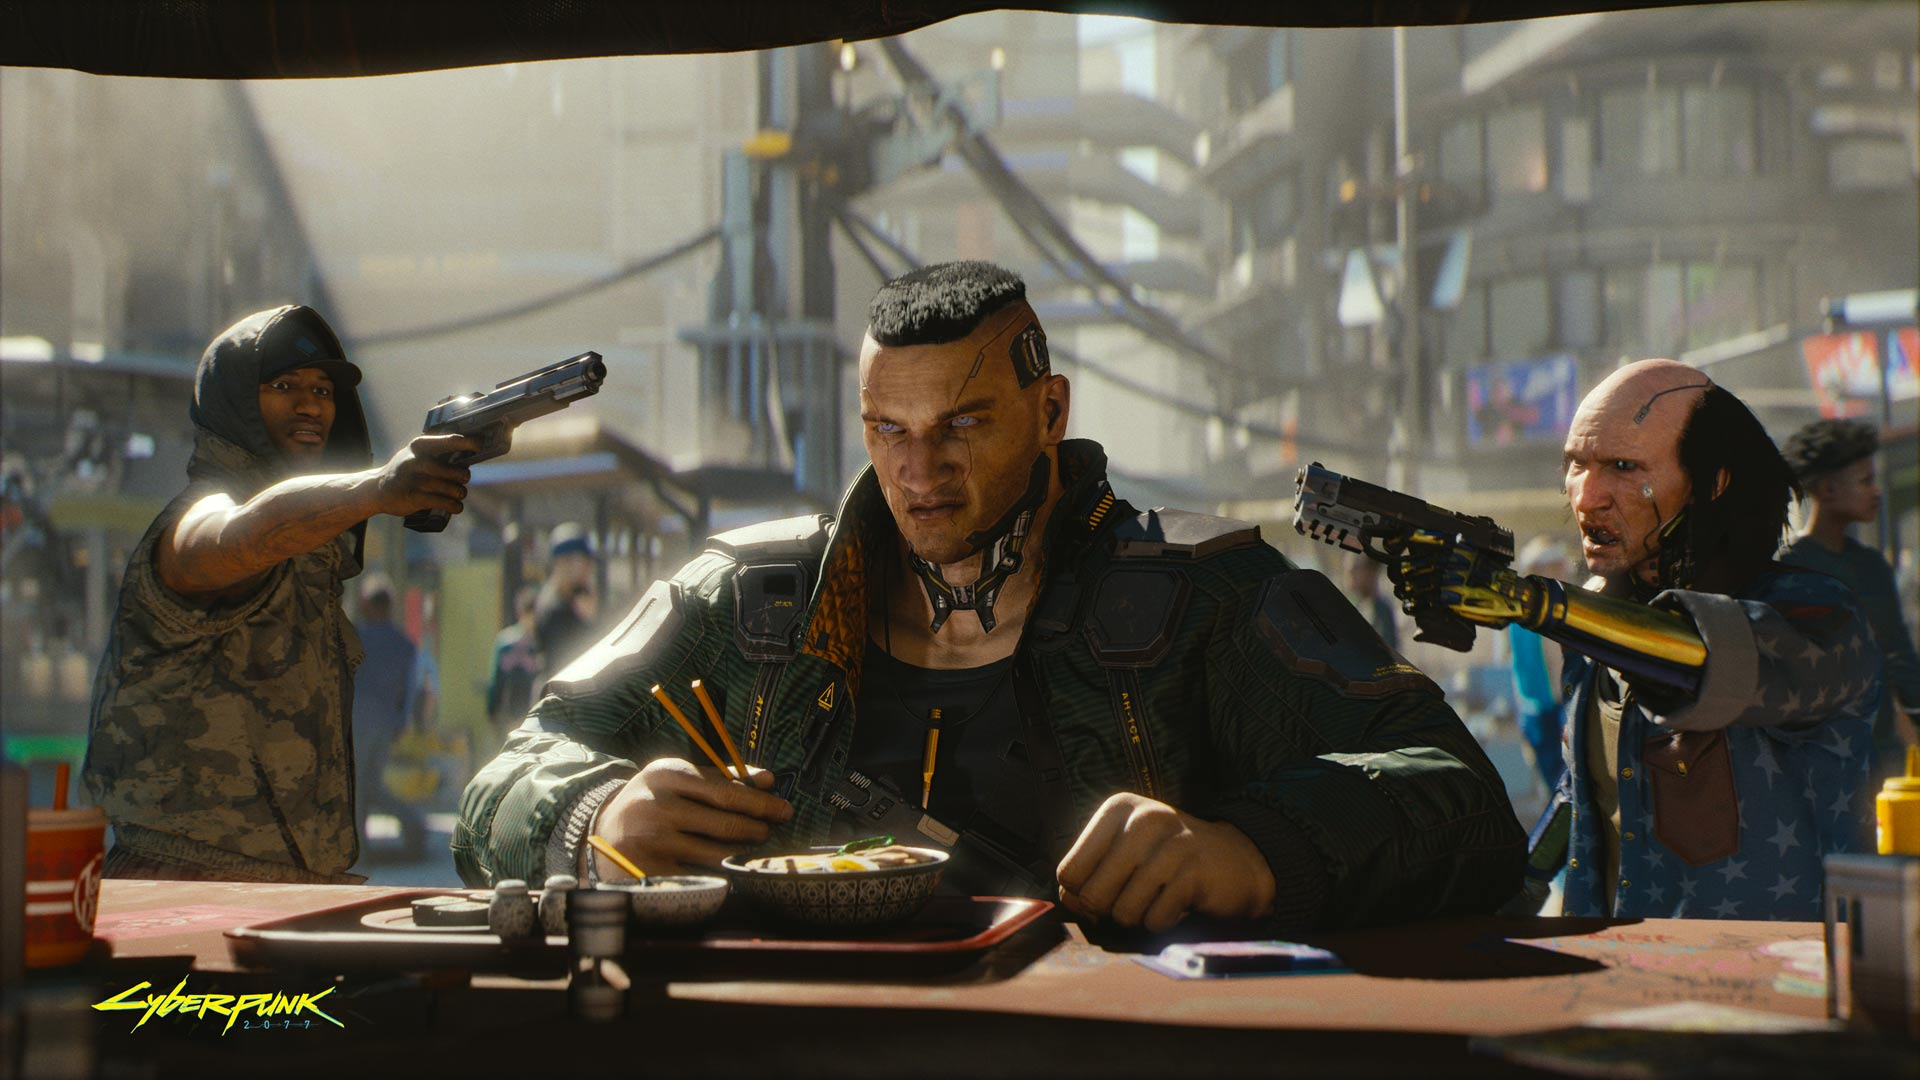 Two men point guns at a cybernetically enhanced man sitting at a noodle bar